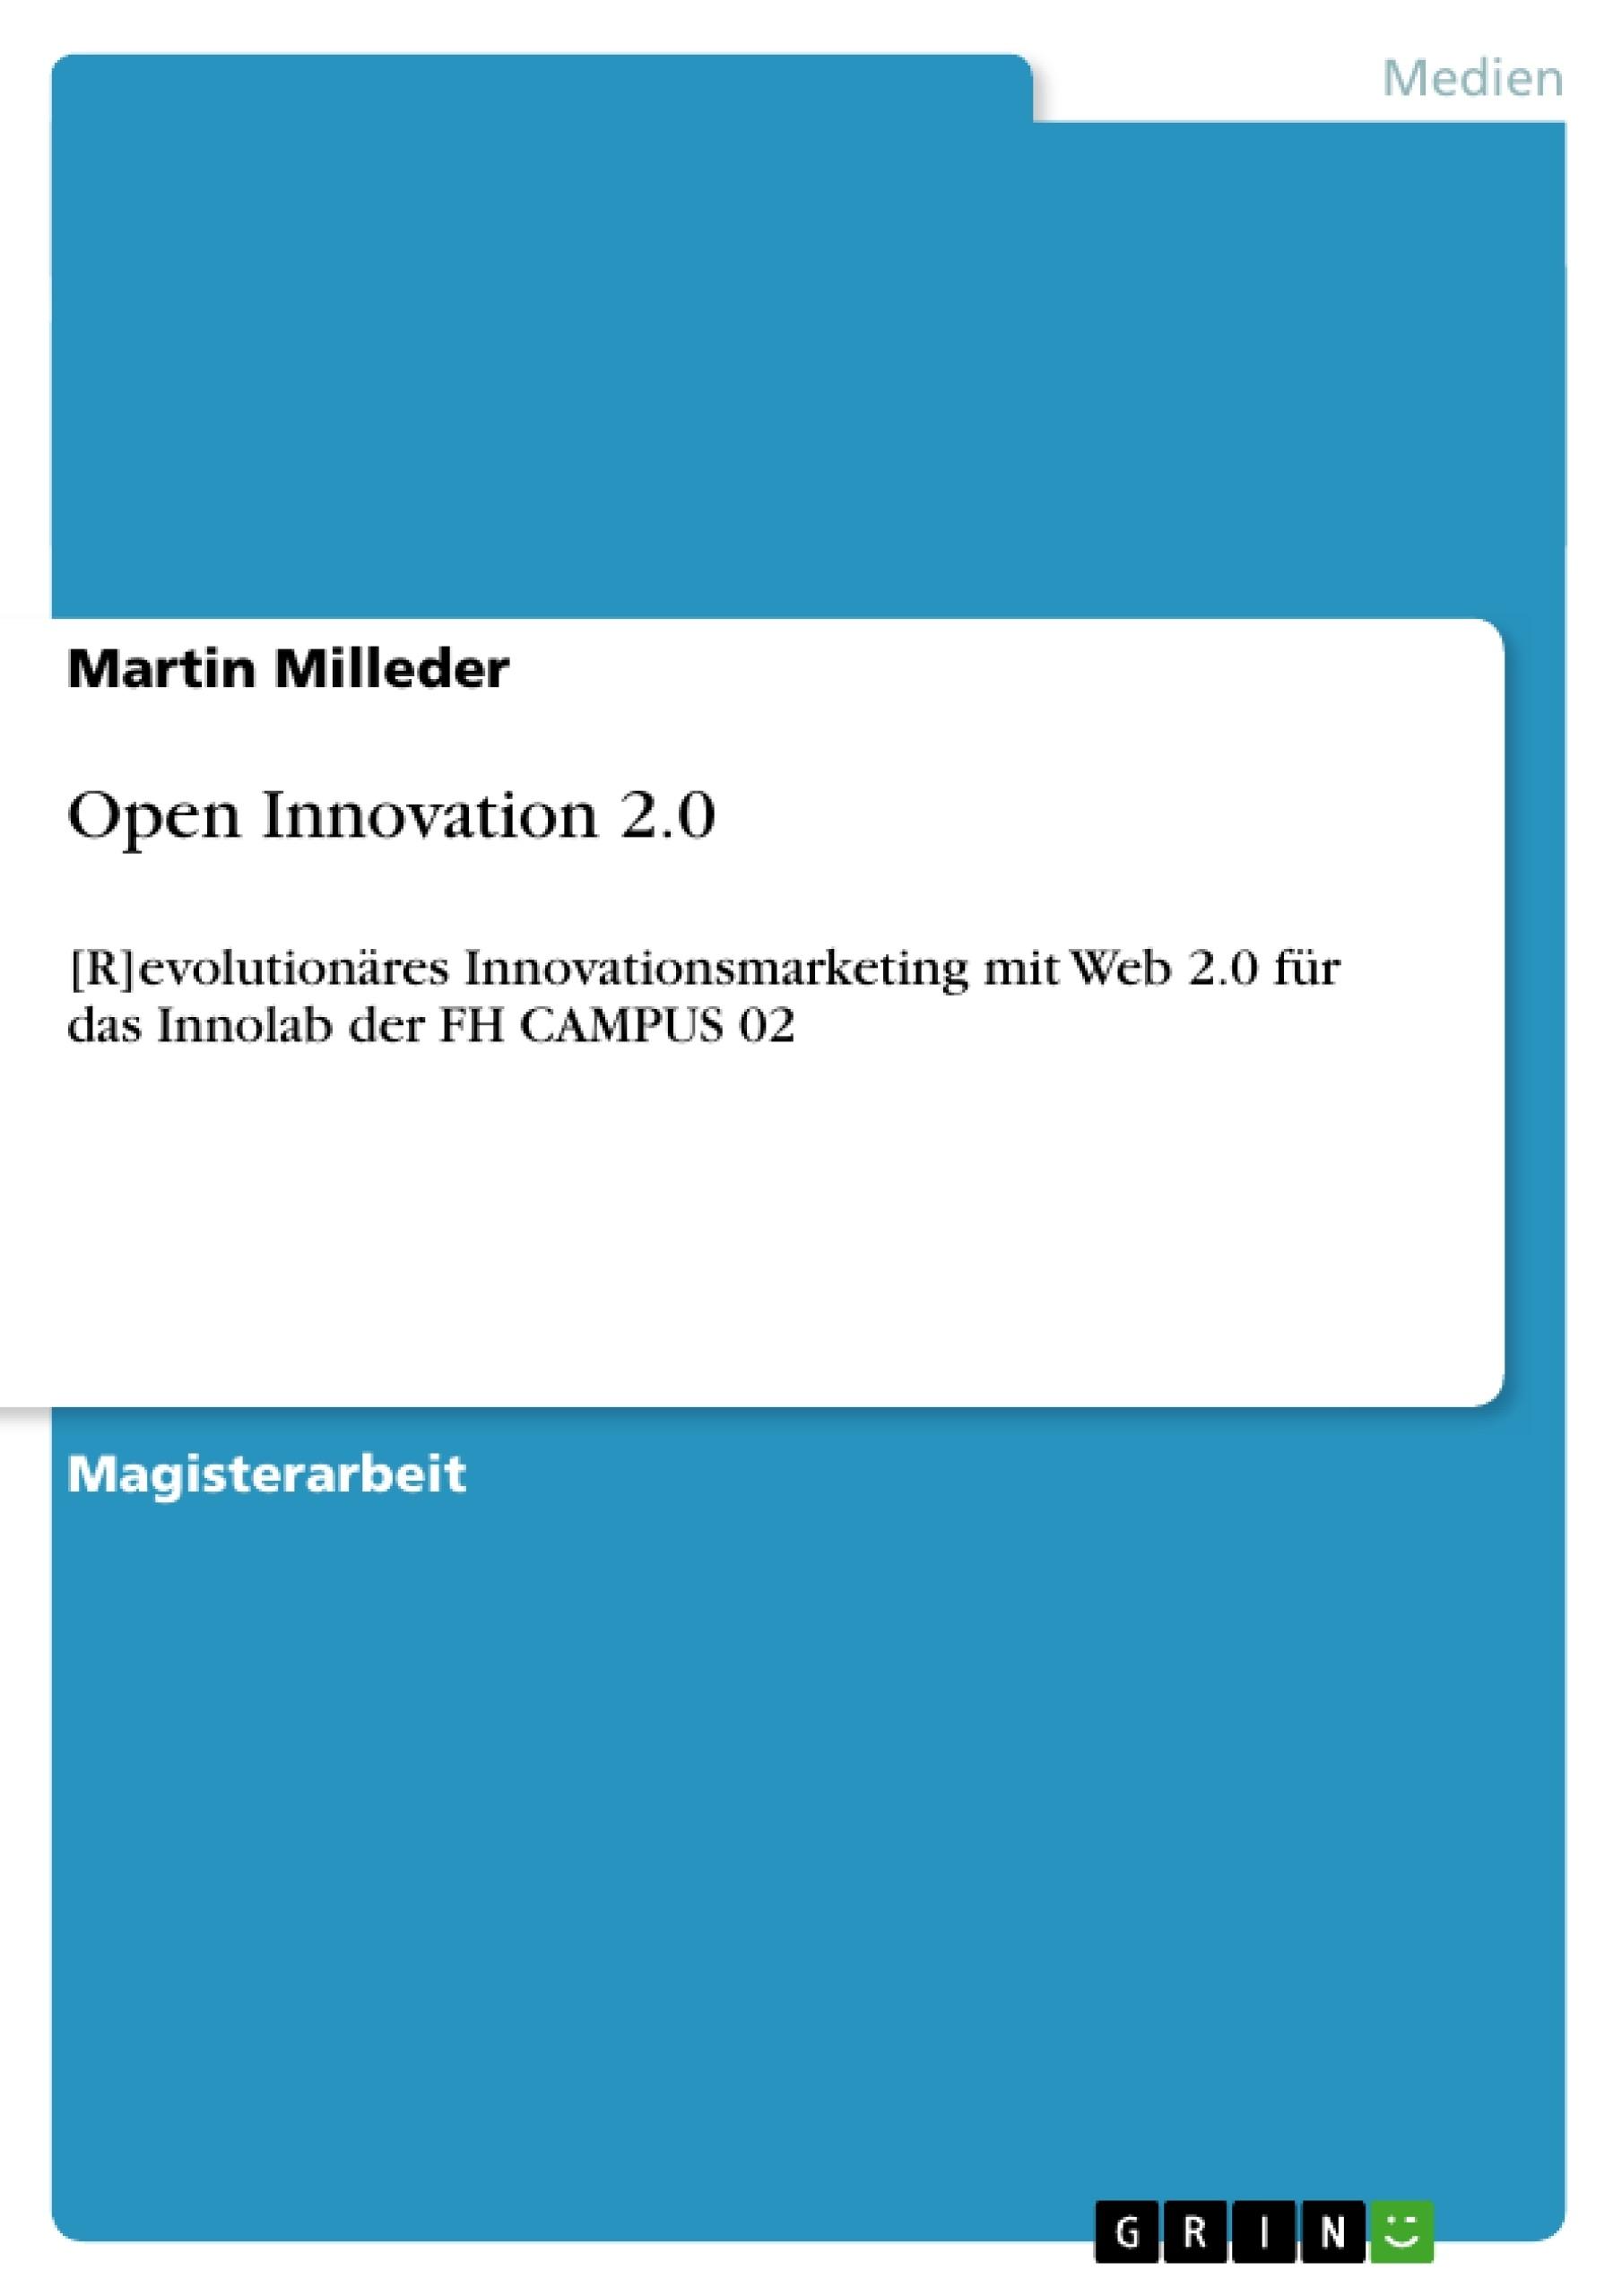 Titel: Open Innovation 2.0